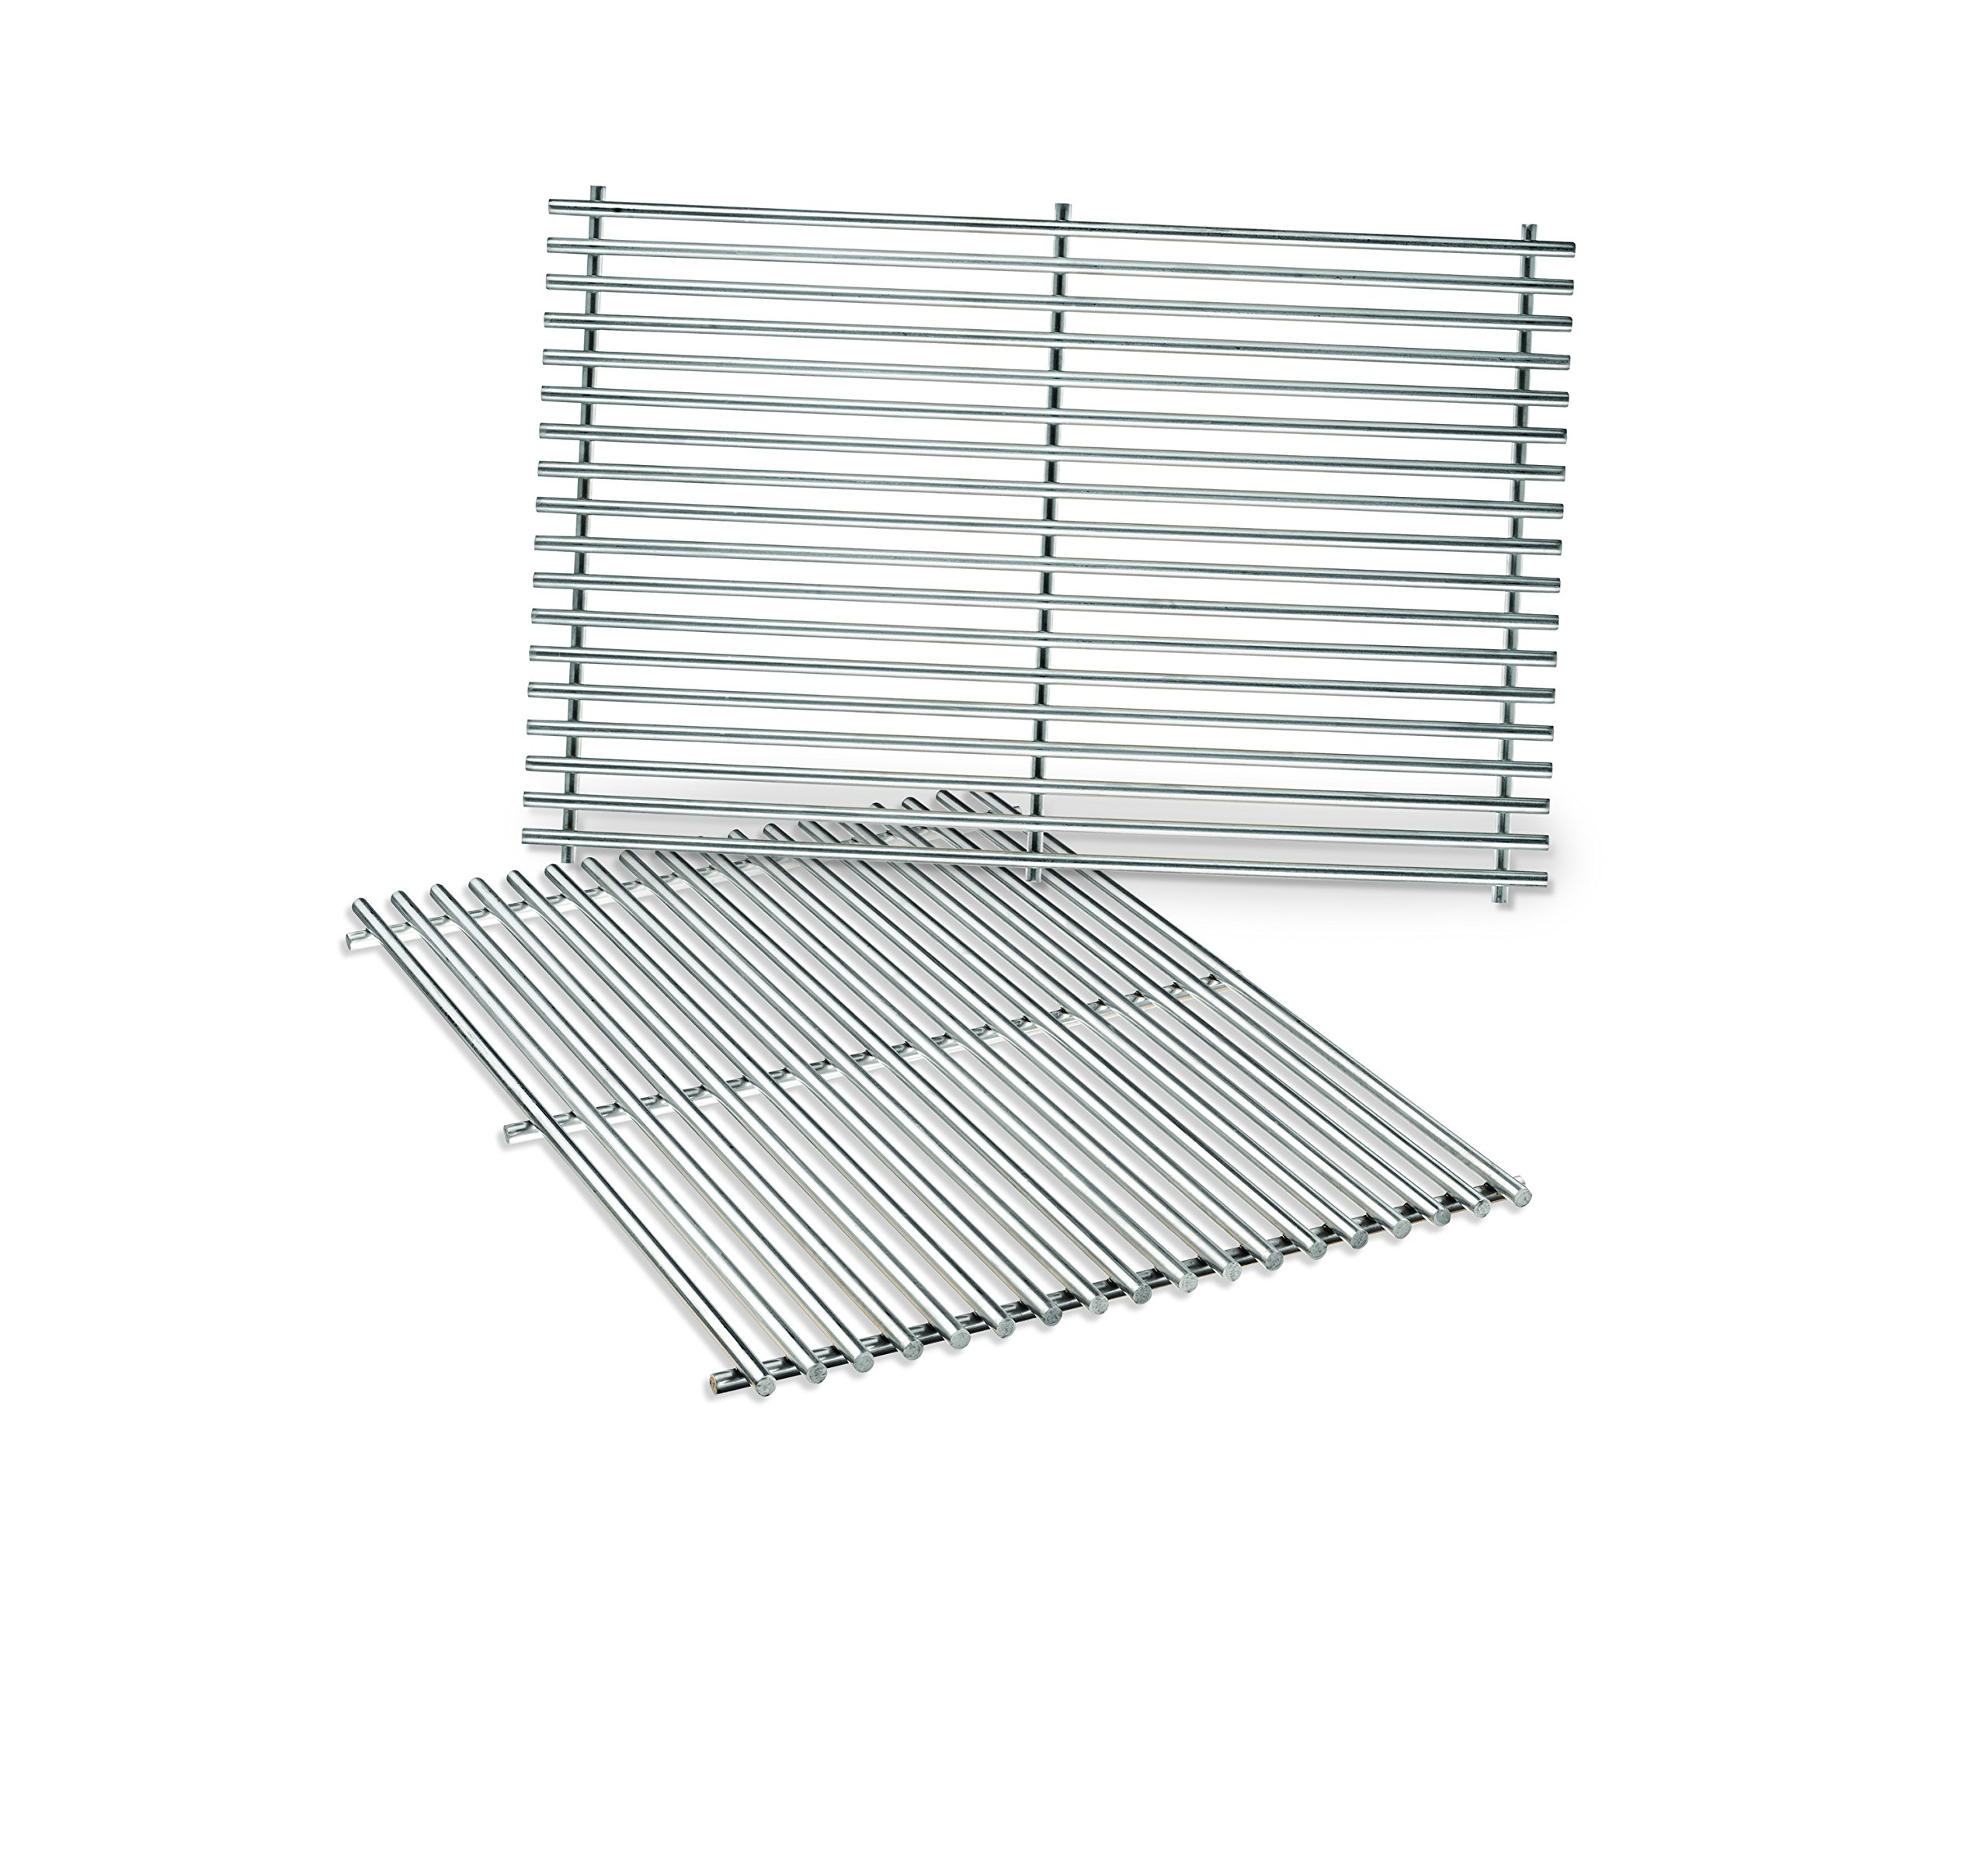 Weber 7528 Stainless Steel Cooking Grates (19.5 x 12.9 x 0.6) by Weber